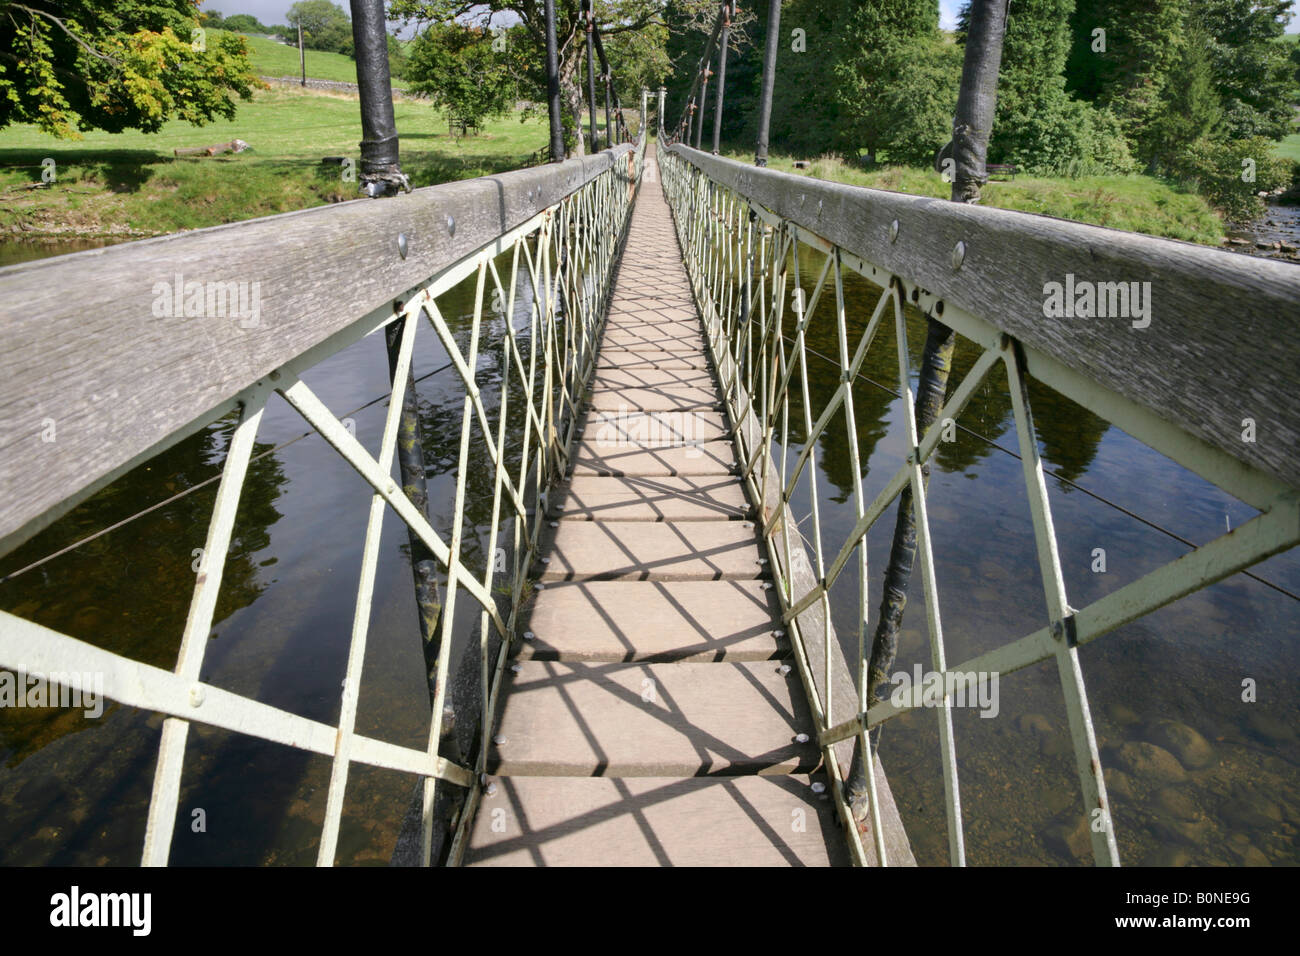 Suspension footbridge over the River Wharfe near Hebden, Yorkshire Dales. Stock Photo